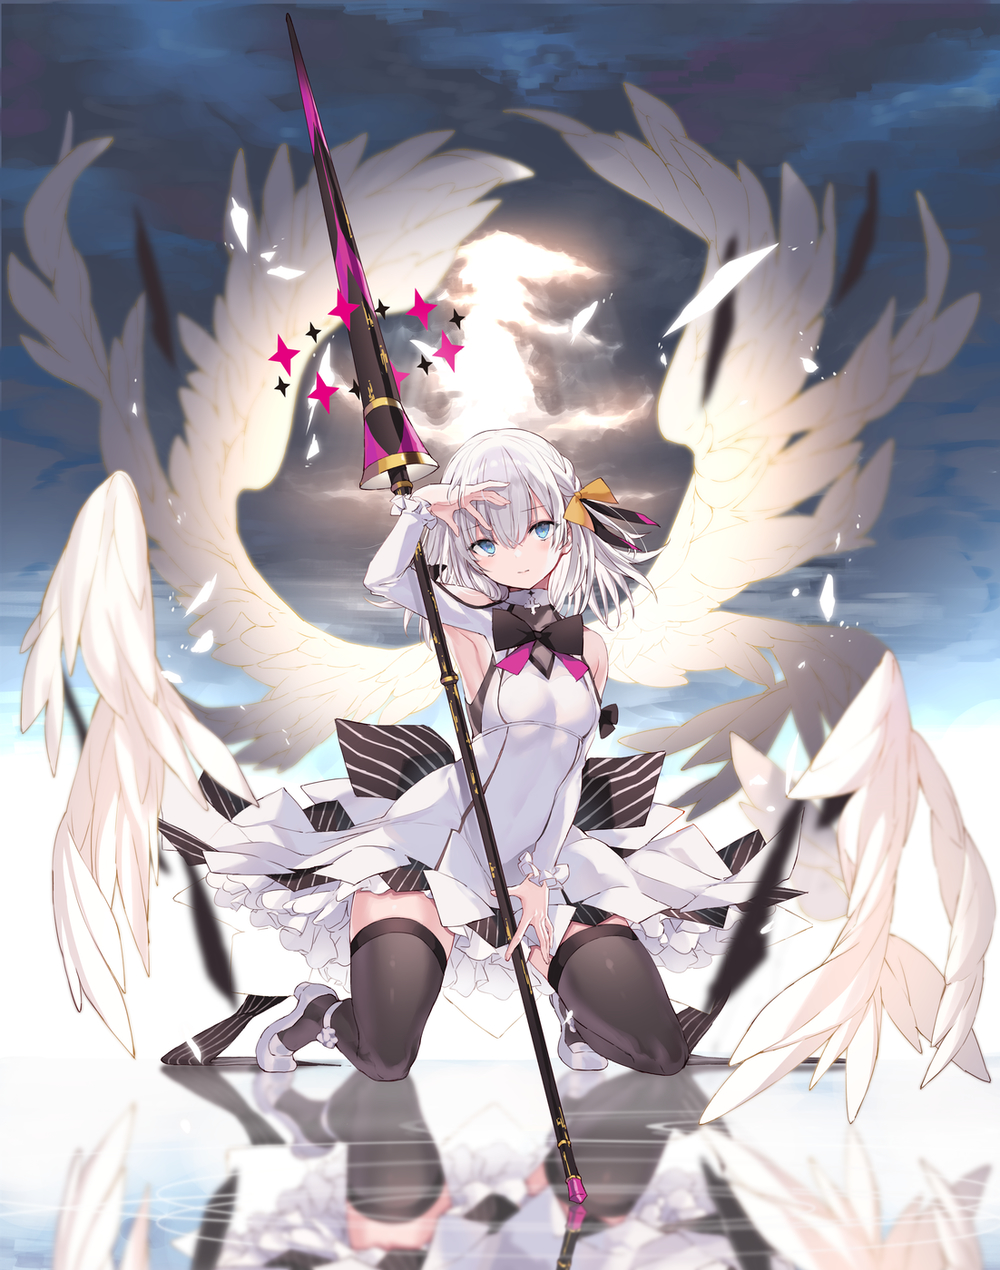 1girl angel_wings armpits bare_shoulders black_legwear blue_eyes blurry breasts closed_mouth clouds dress feathered_wings hair_between_eyes highres kneeling lance long_sleeves looking_at_viewer medium_hair nanananana original polearm reflection shoes shoulder_cutout small_breasts solo sunlight thigh-highs weapon white_dress white_footwear white_hair wings zettai_ryouiki